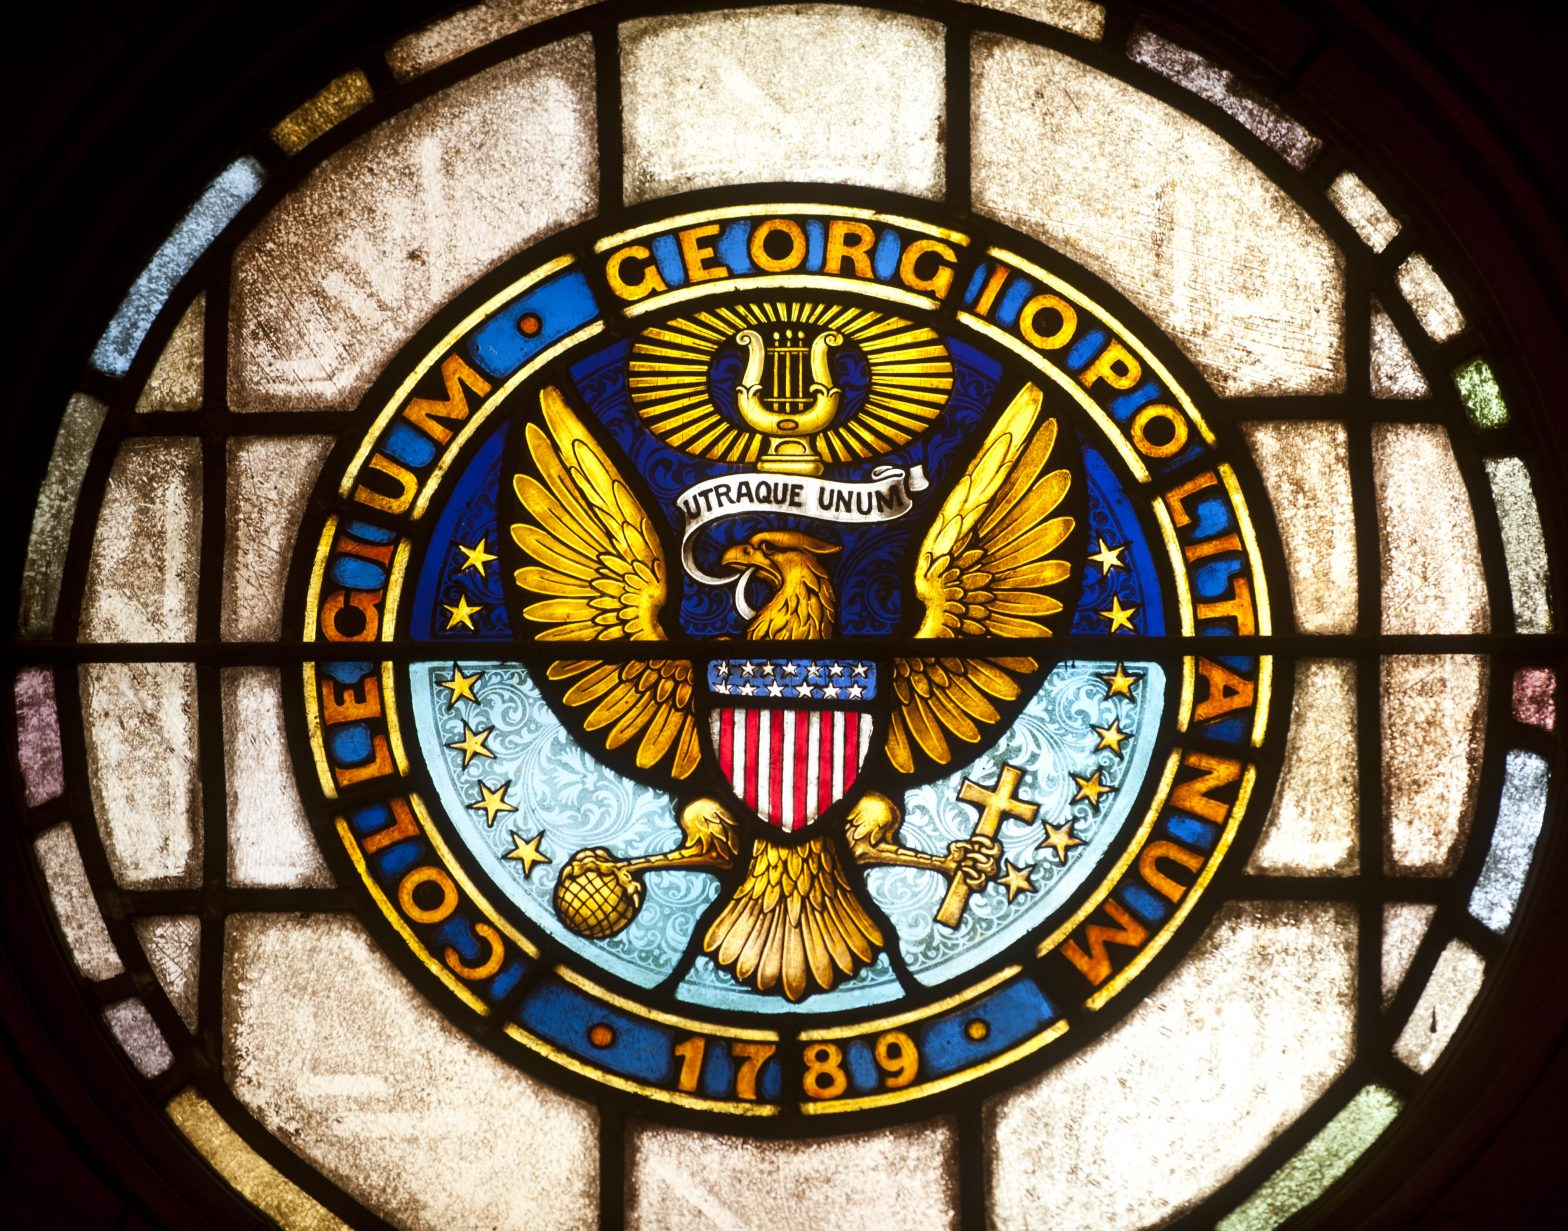 Stained Glass Seal of Georgetown University